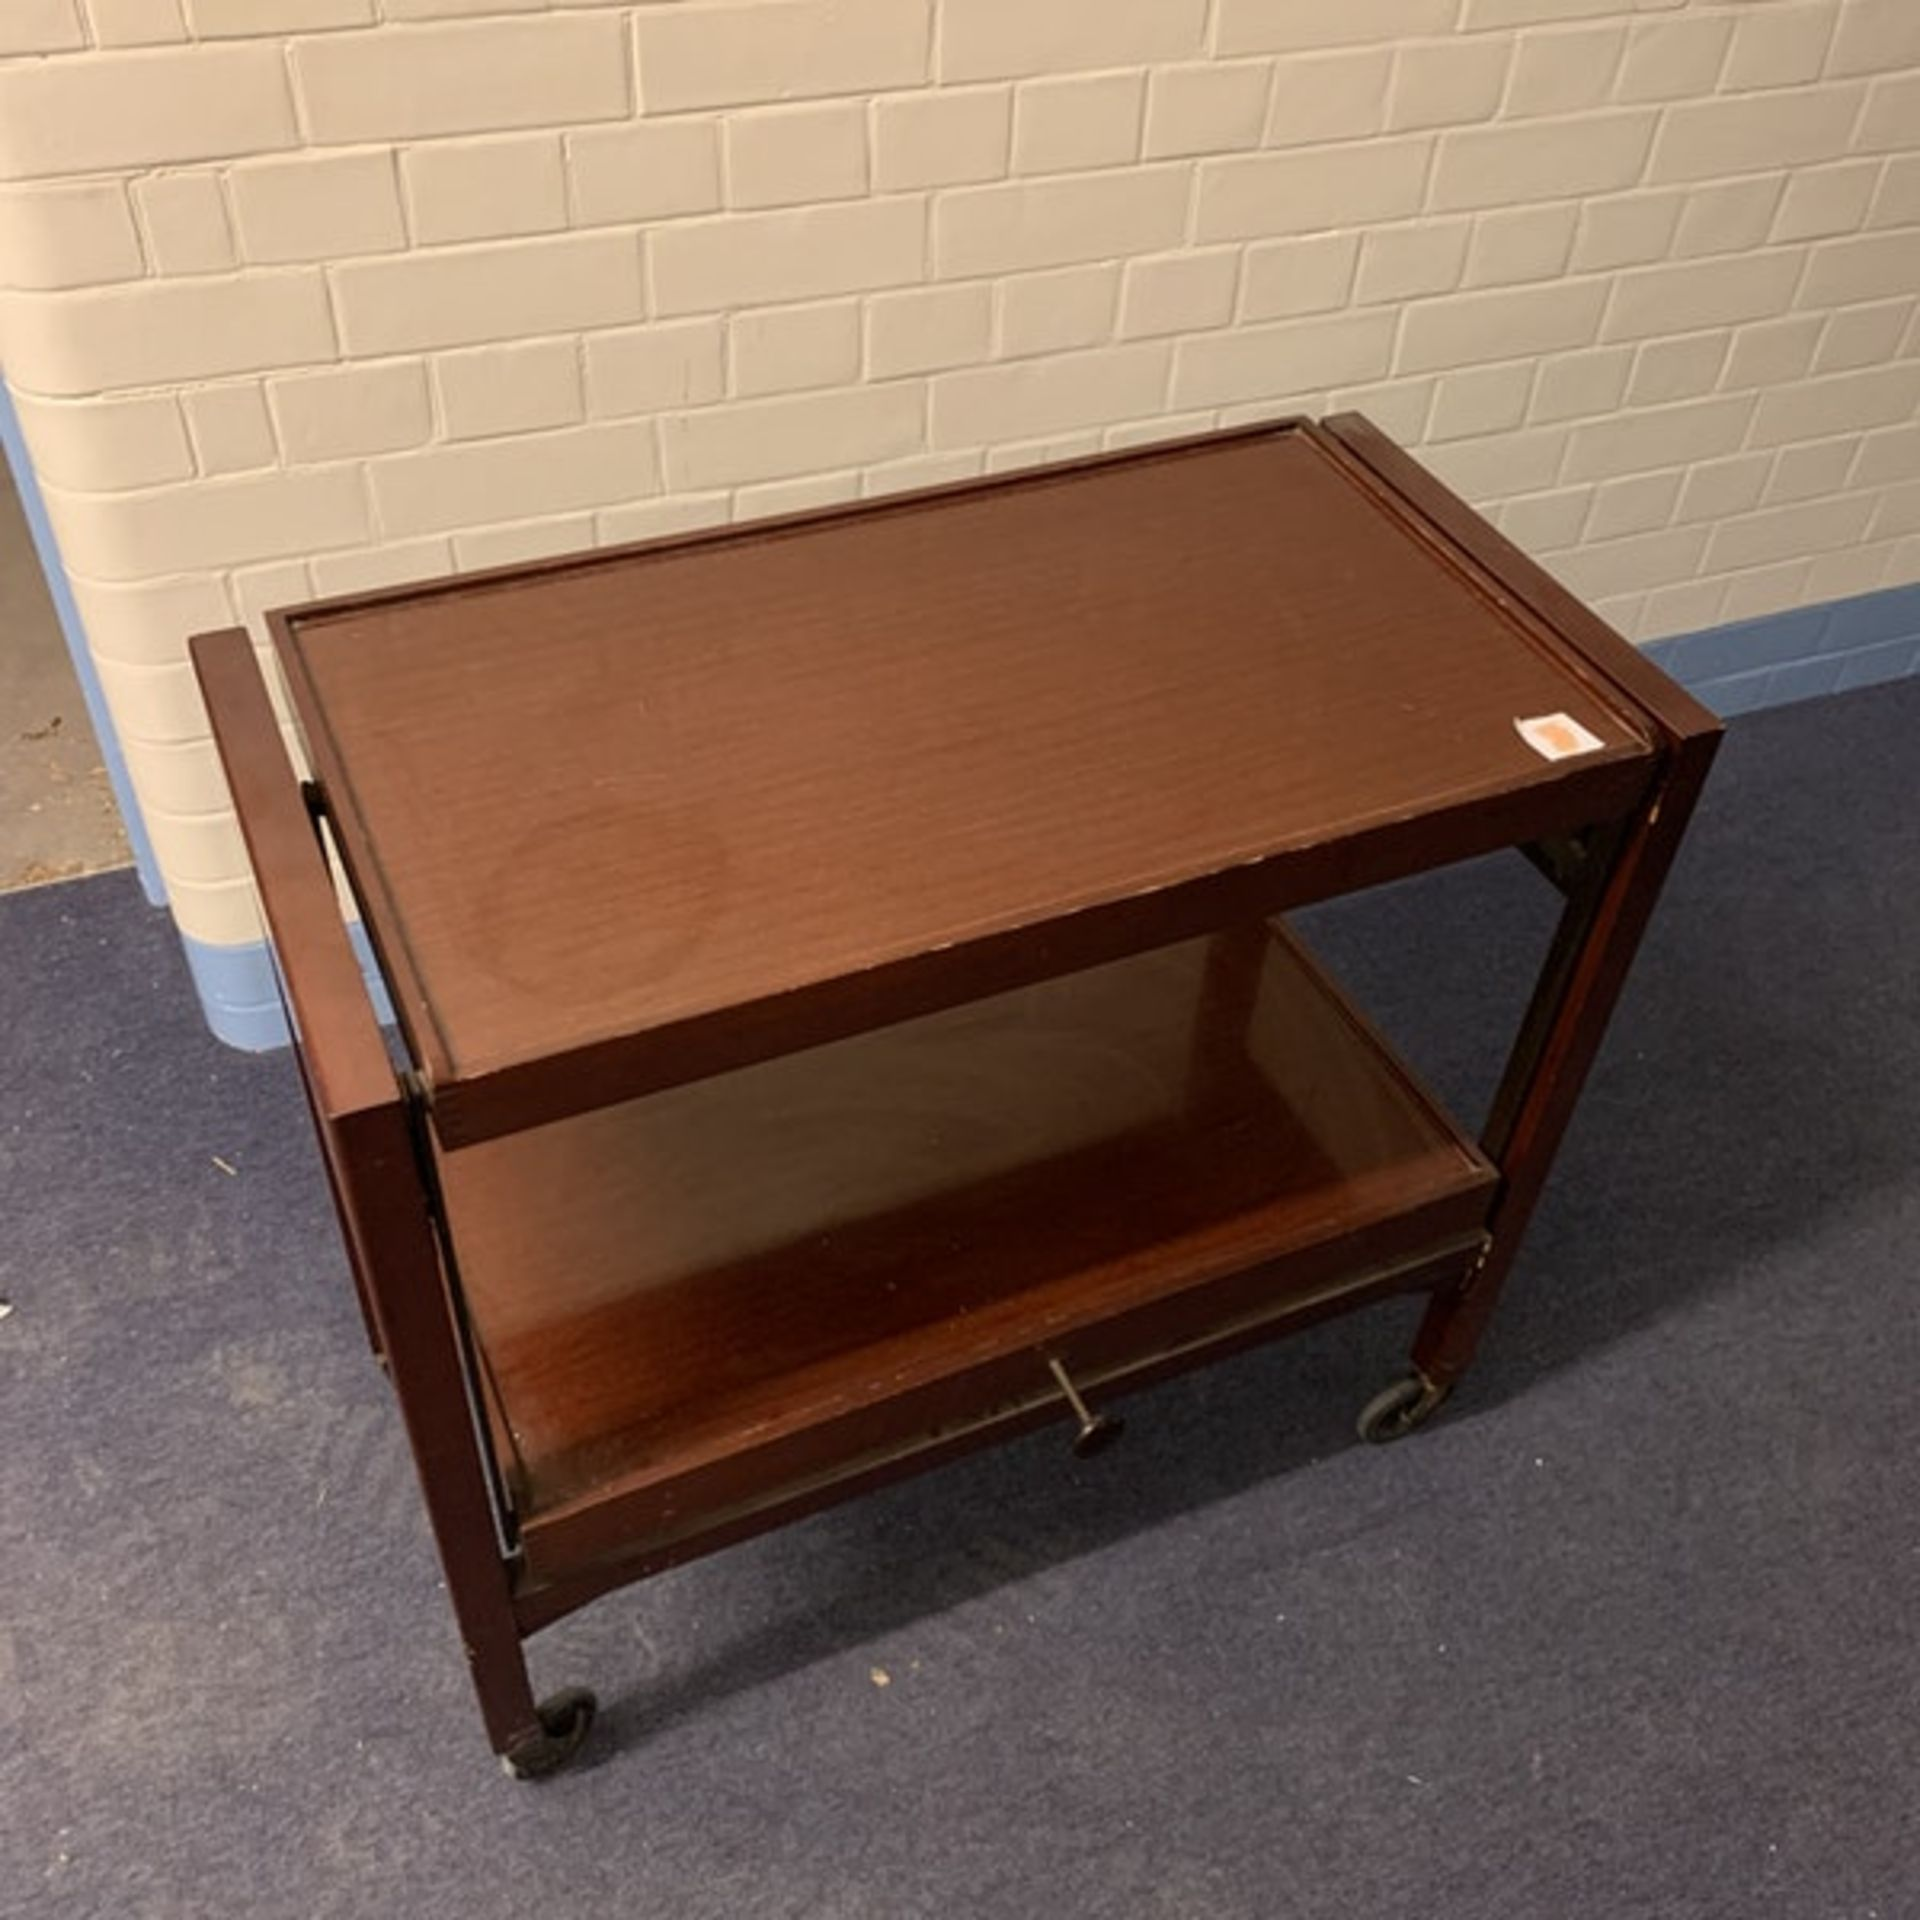 A teak adjustable serving trolley / gueridon The lower tier rising to form a double section upper